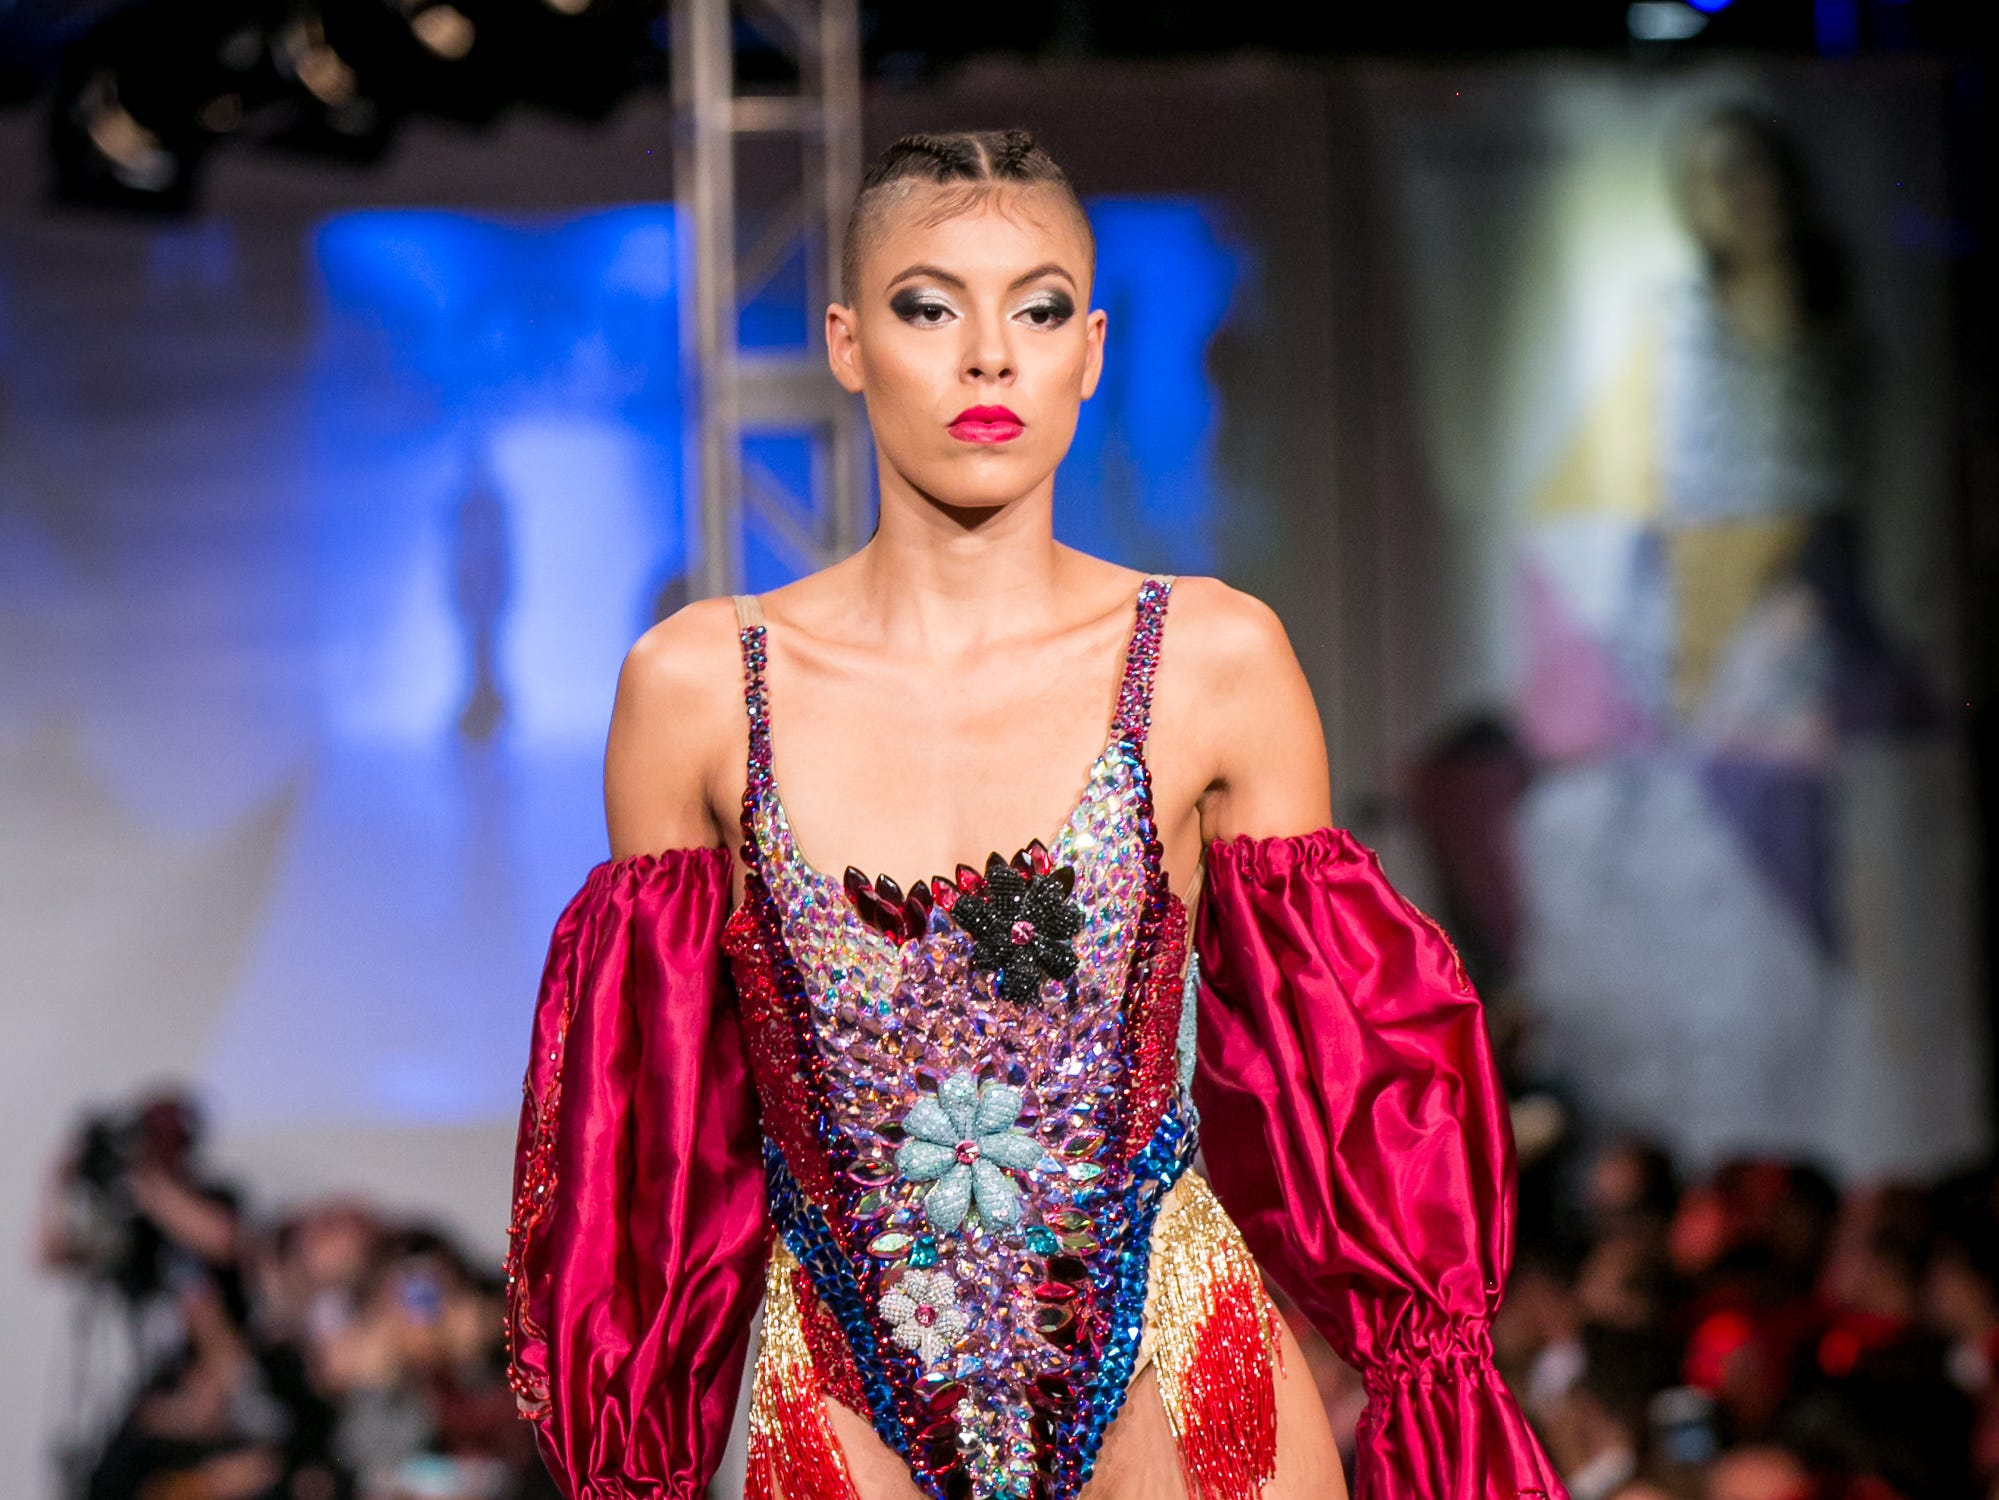 Chau Chic's runway during Phoenix Fashion Week at Talking Stick Resort in Scottsdale on Saturday, October 20, 2018.